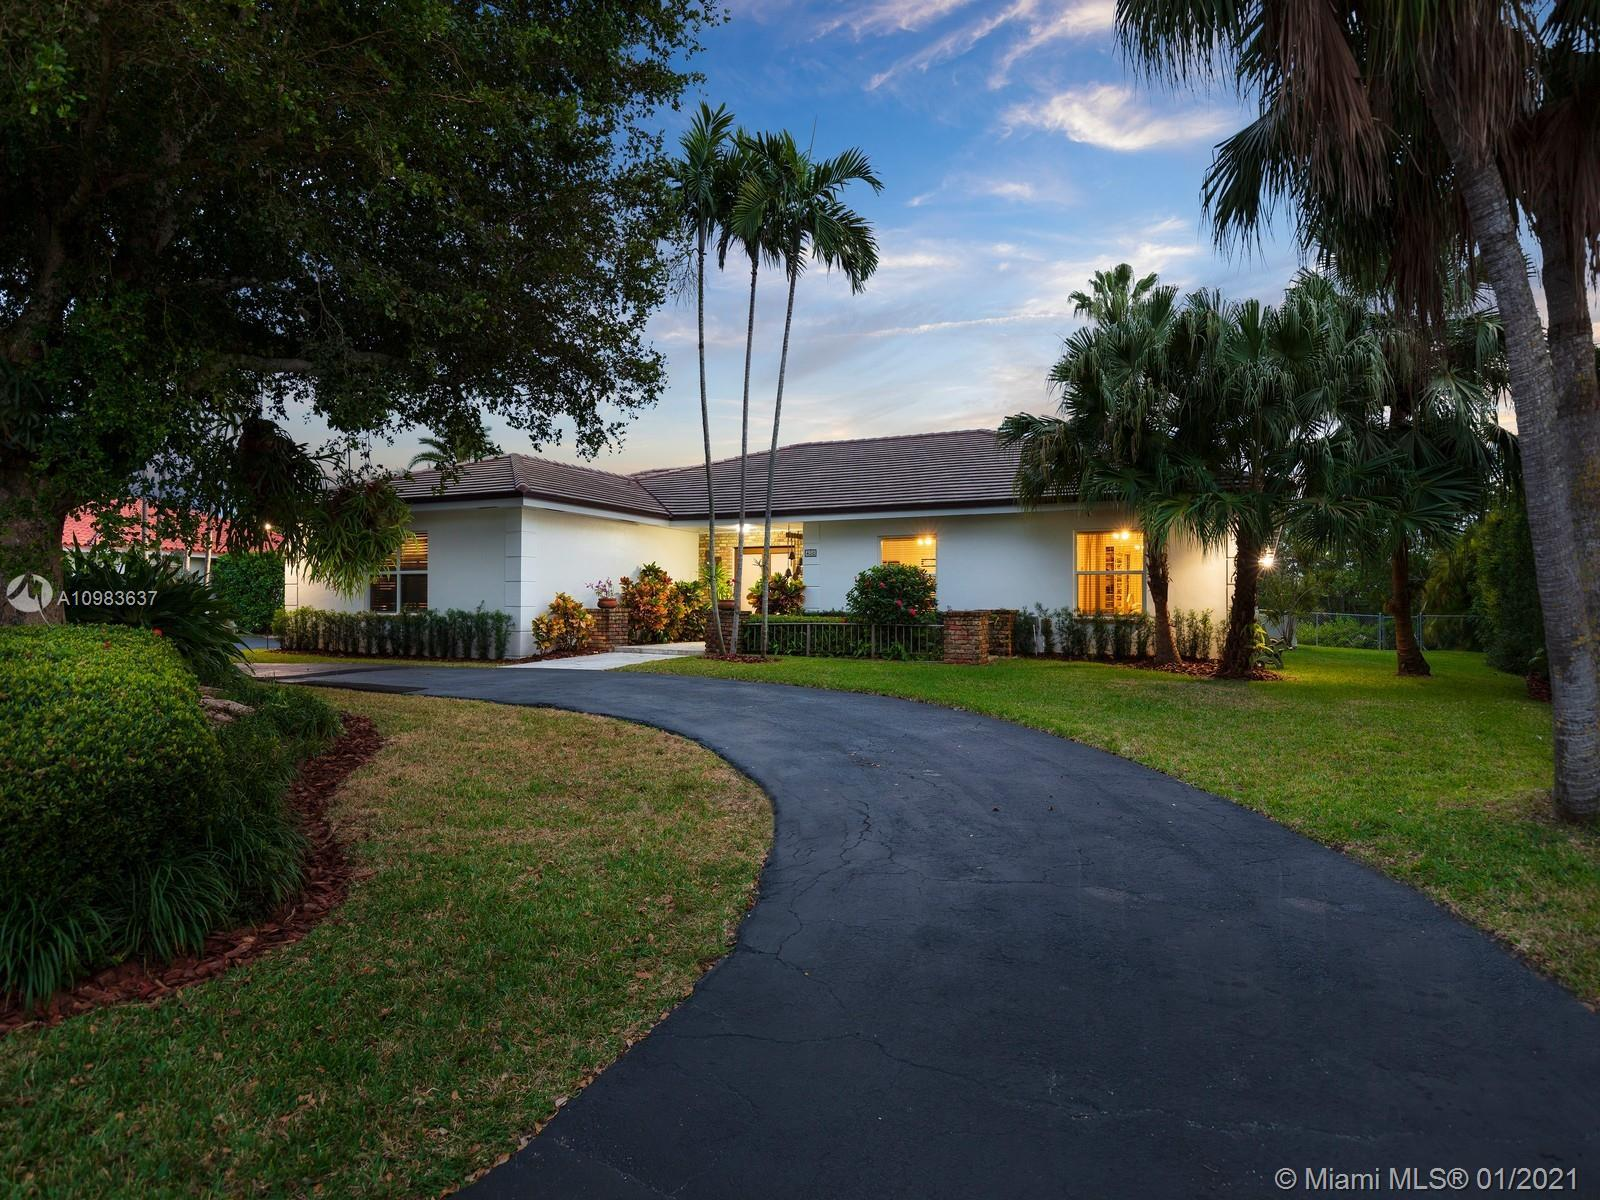 Enchanting one-story canal front home located in the guard gated community of Hammock Oaks. This tra